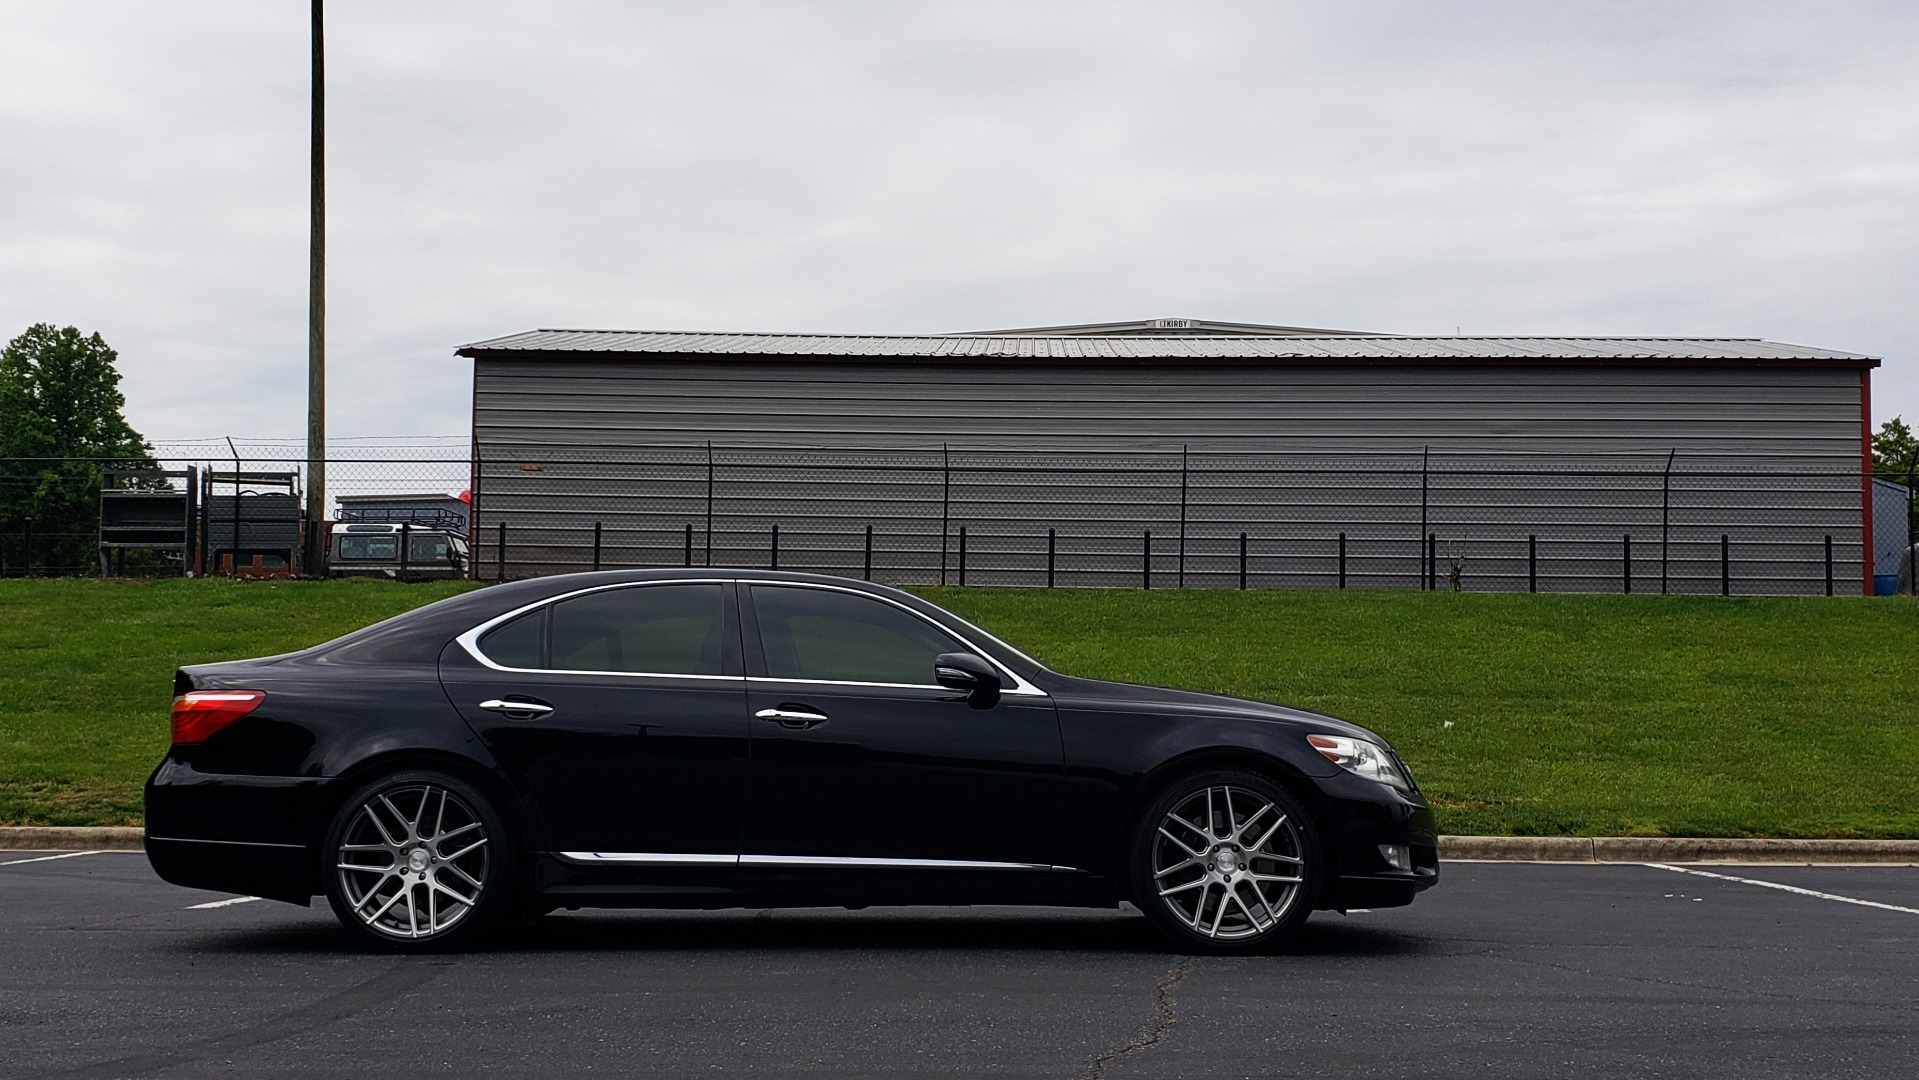 Used 2012 Lexus LS 460 COMFORT W/SPORT / VENT SEATS / NAV / MARK LEV SND / SUNROOF for sale Sold at Formula Imports in Charlotte NC 28227 6